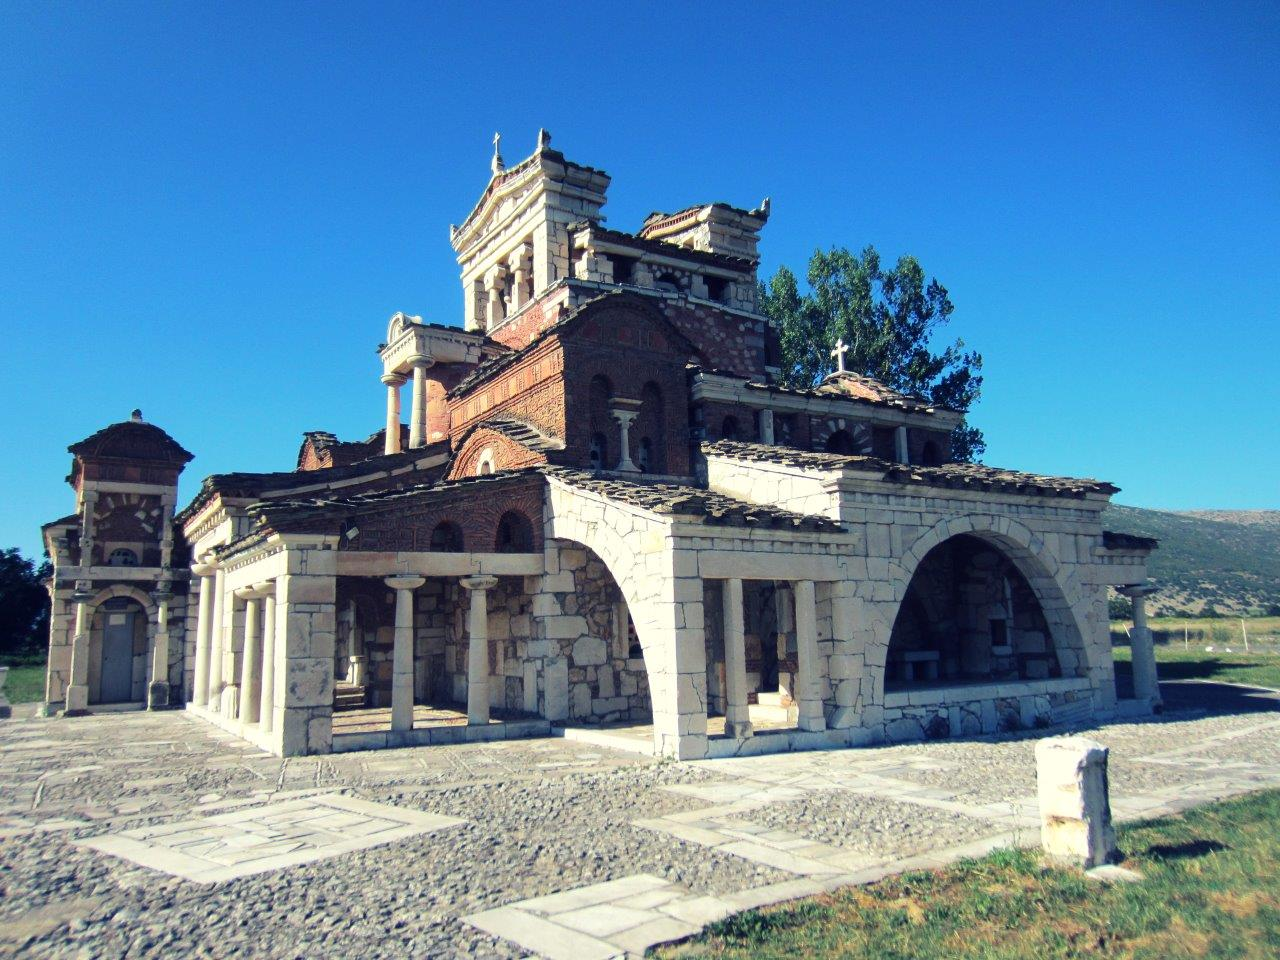 The church of Agia Fotini near Tripoli